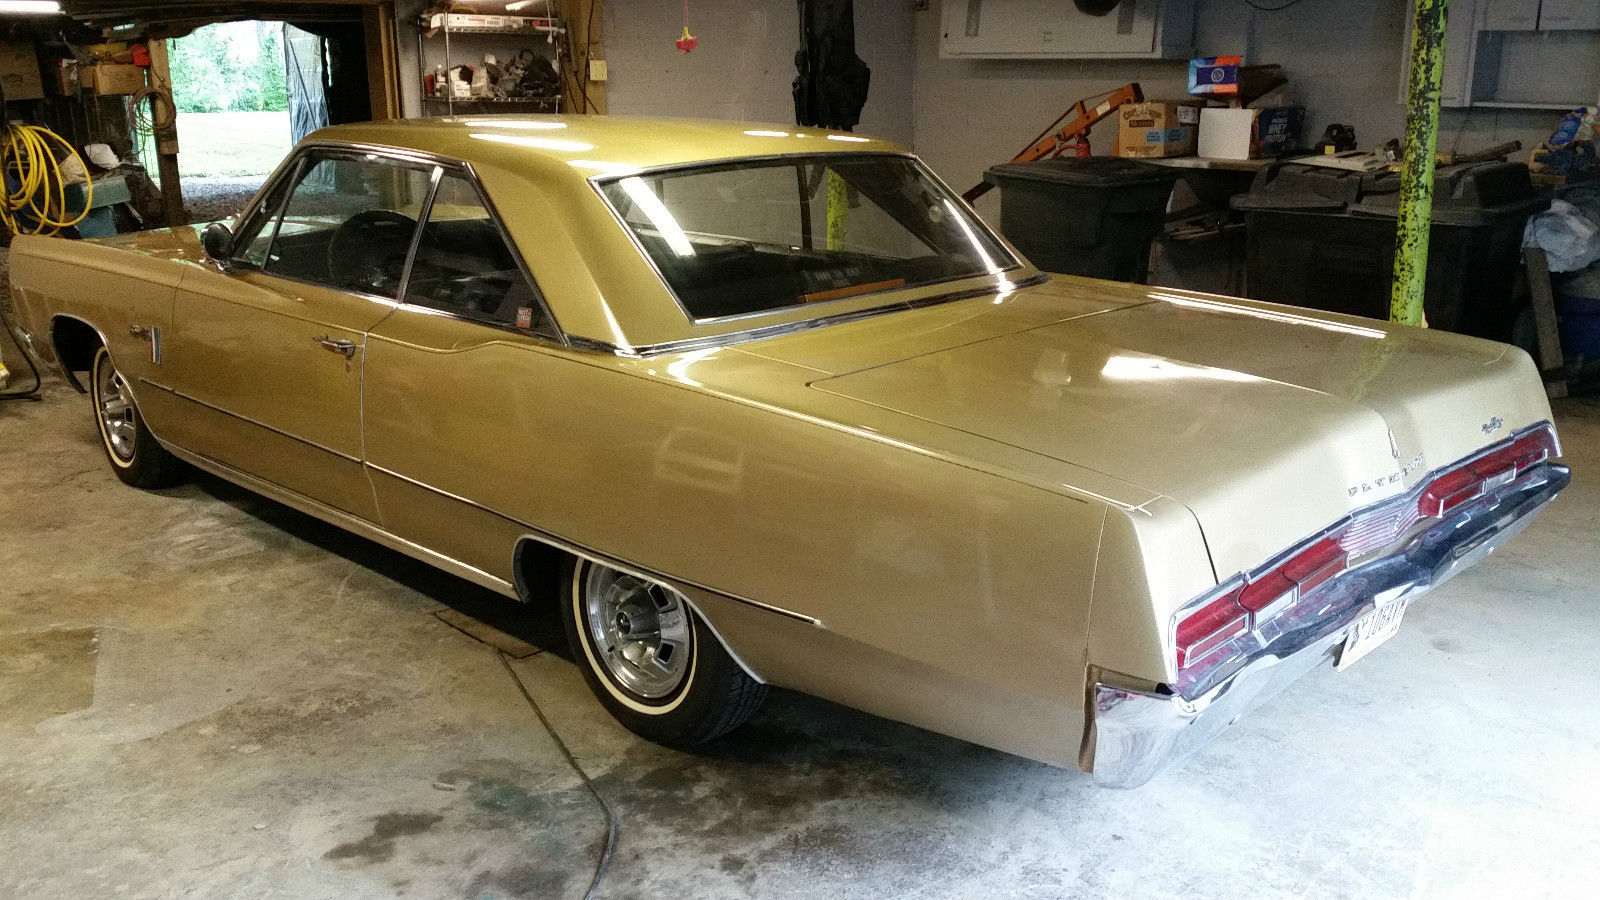 Mint 1967 Plymouth Fury 3 Sport with only 53986 miles